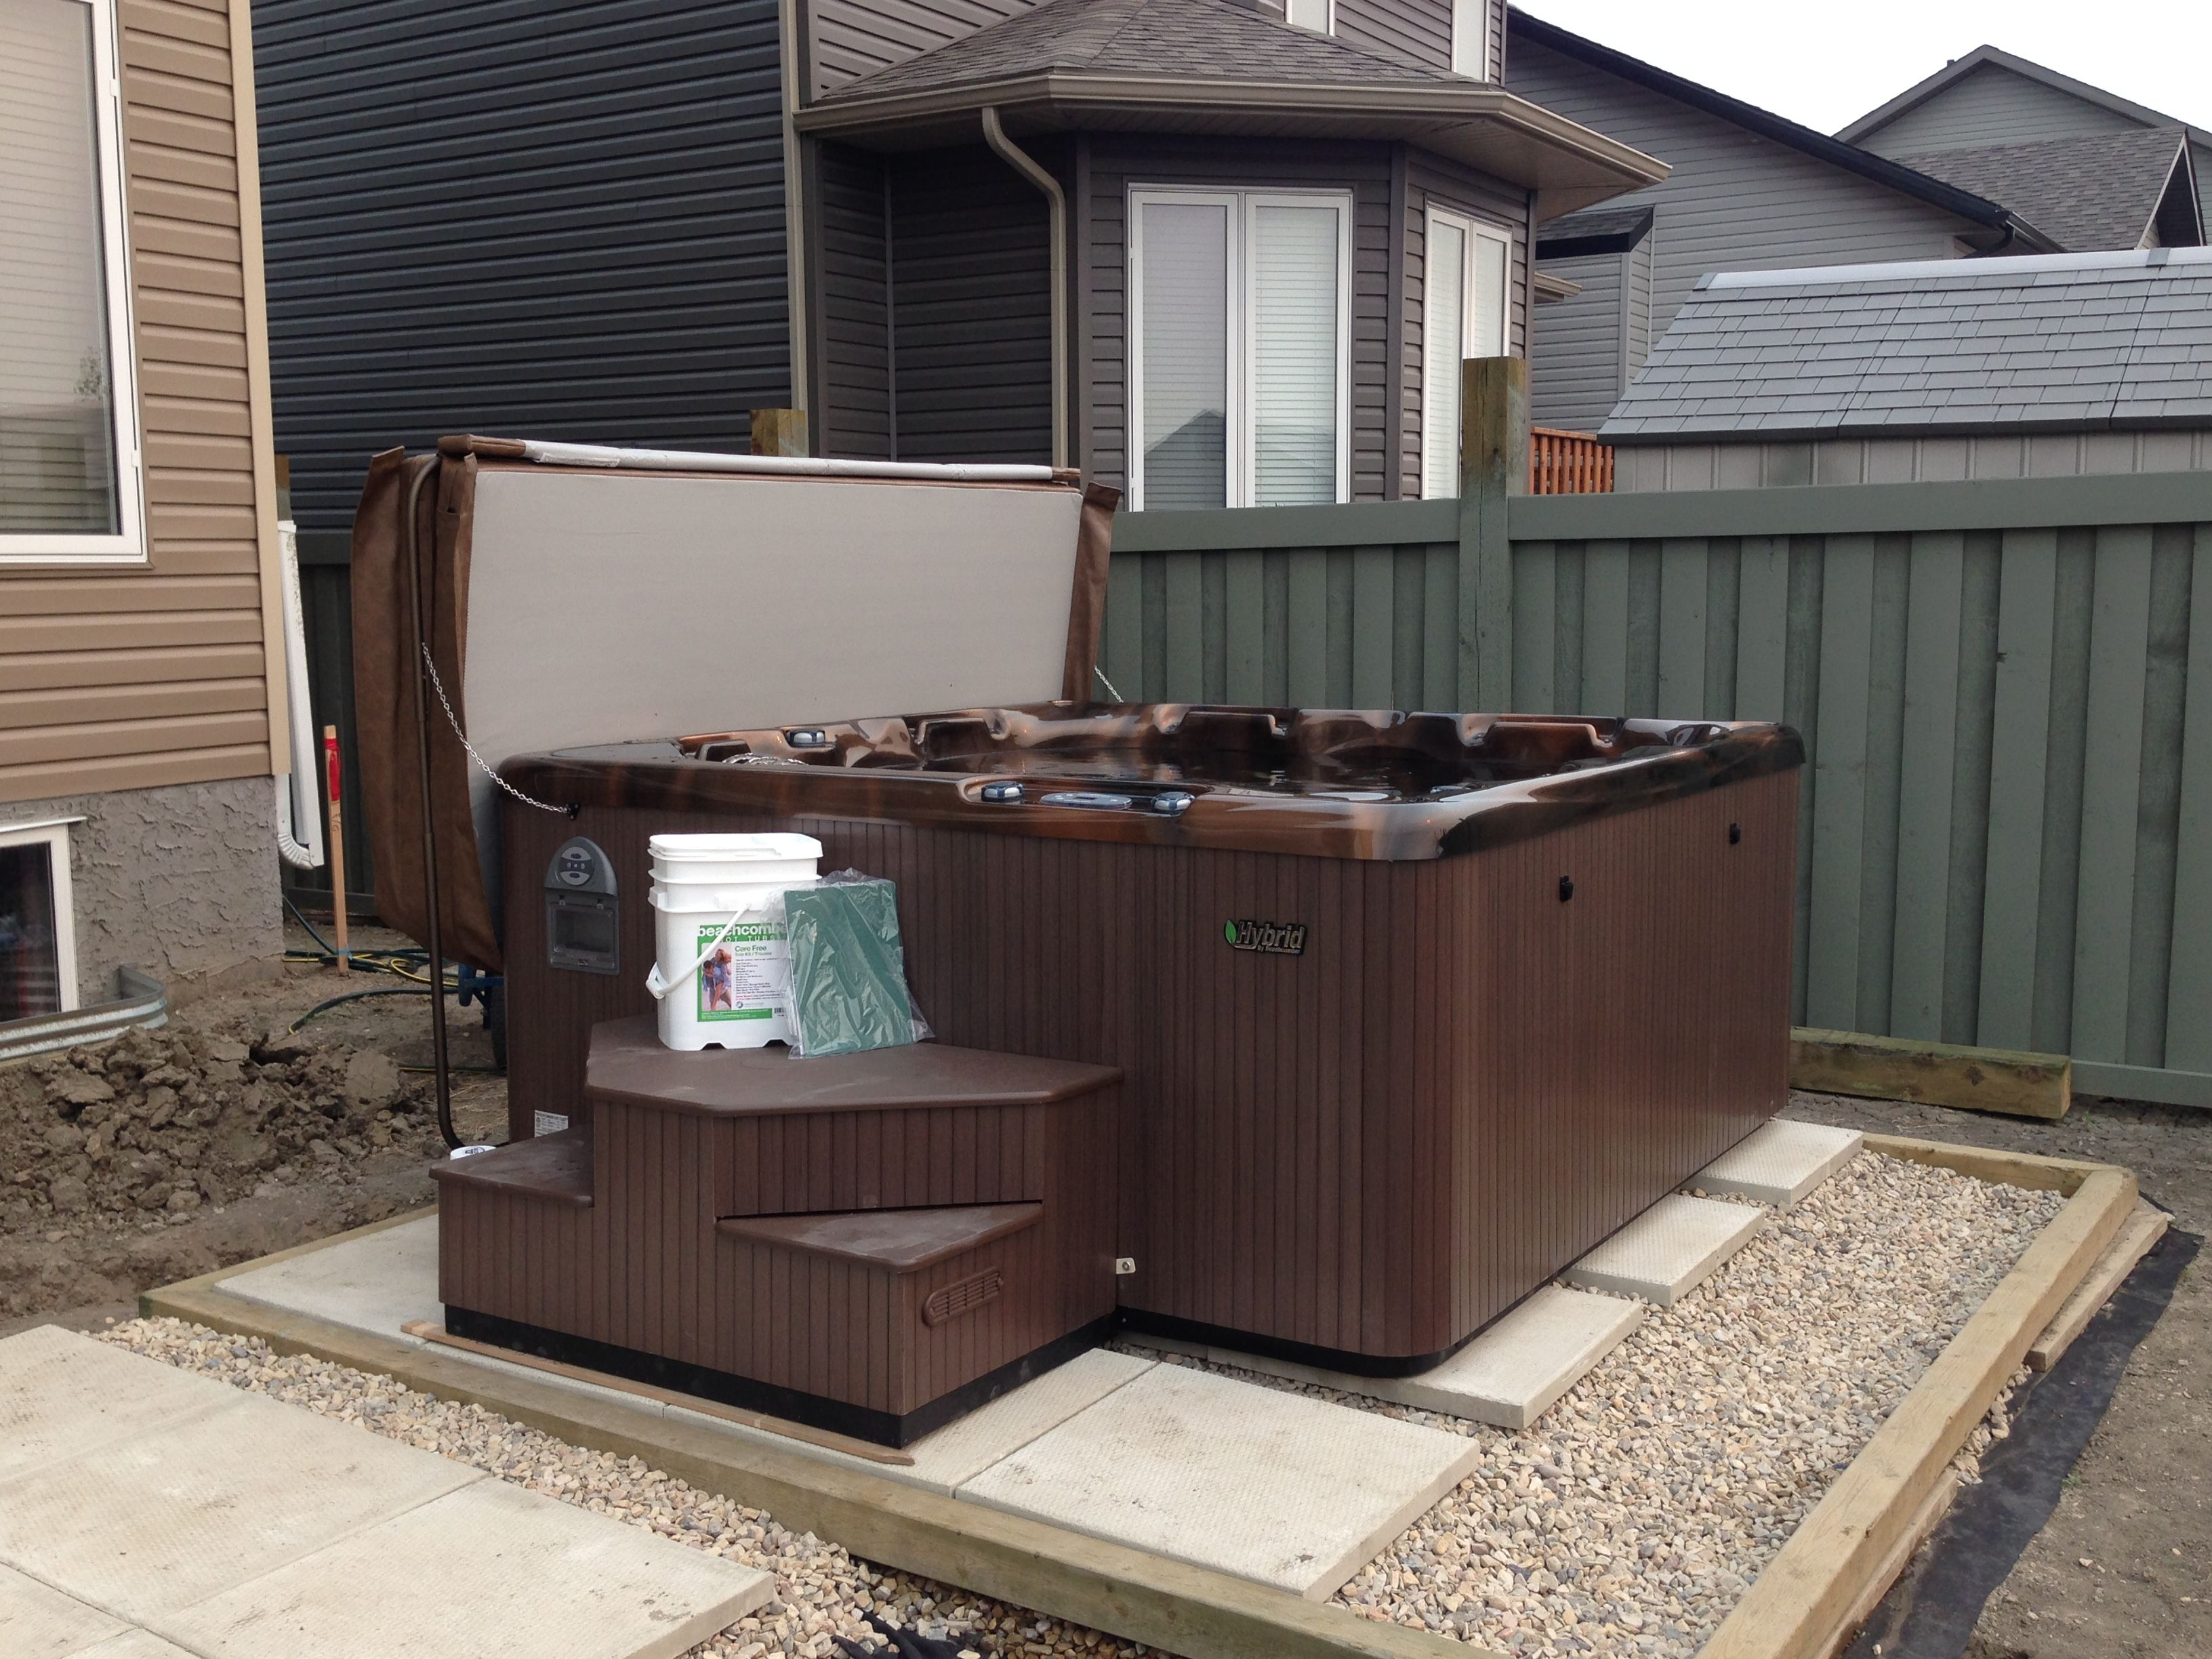 small resolution of beachcomber model 580 install hot tub patio whistler spas backyard ideas pools